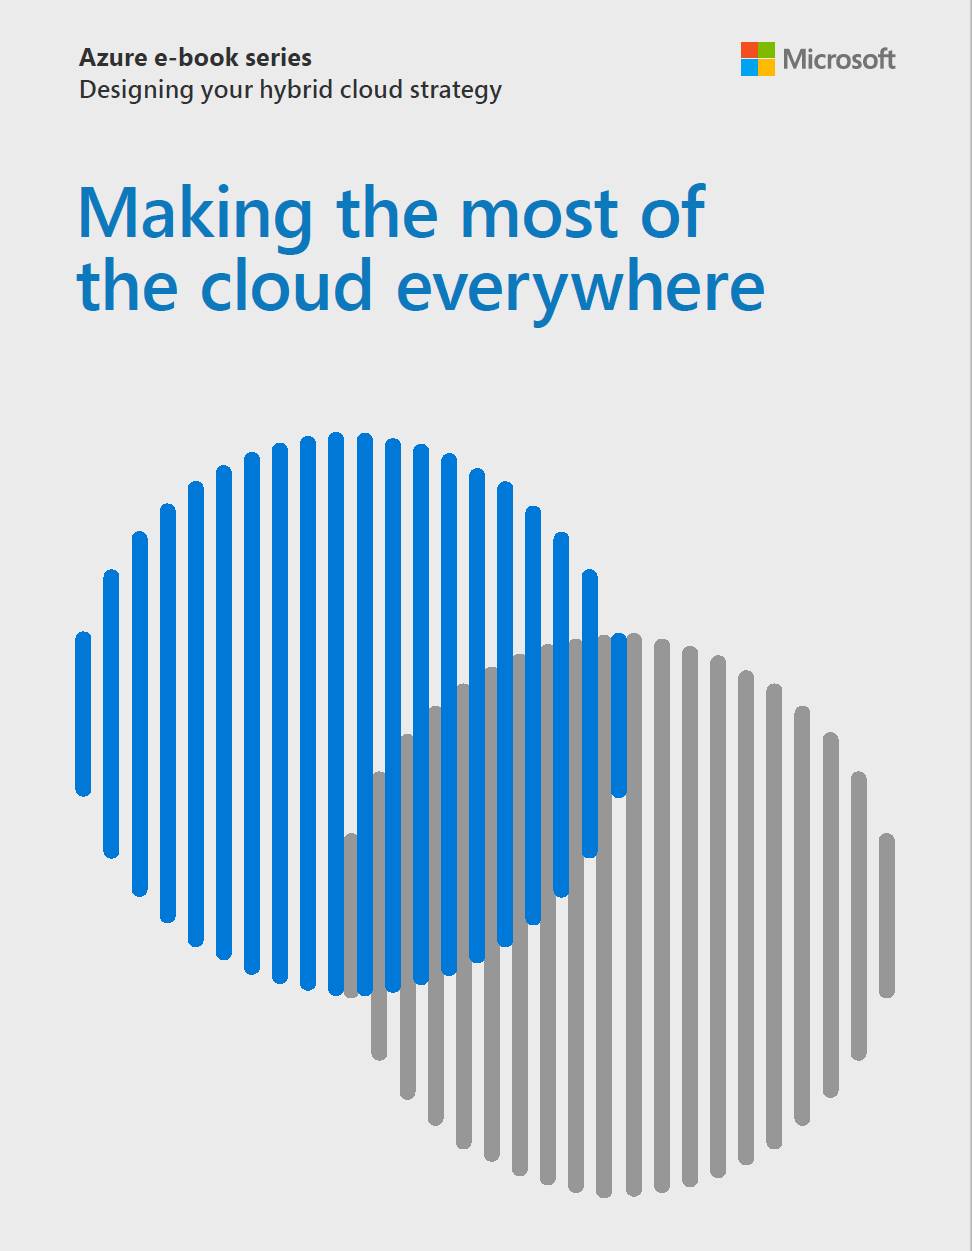 Making the Most of the Cloud Everywhere Image